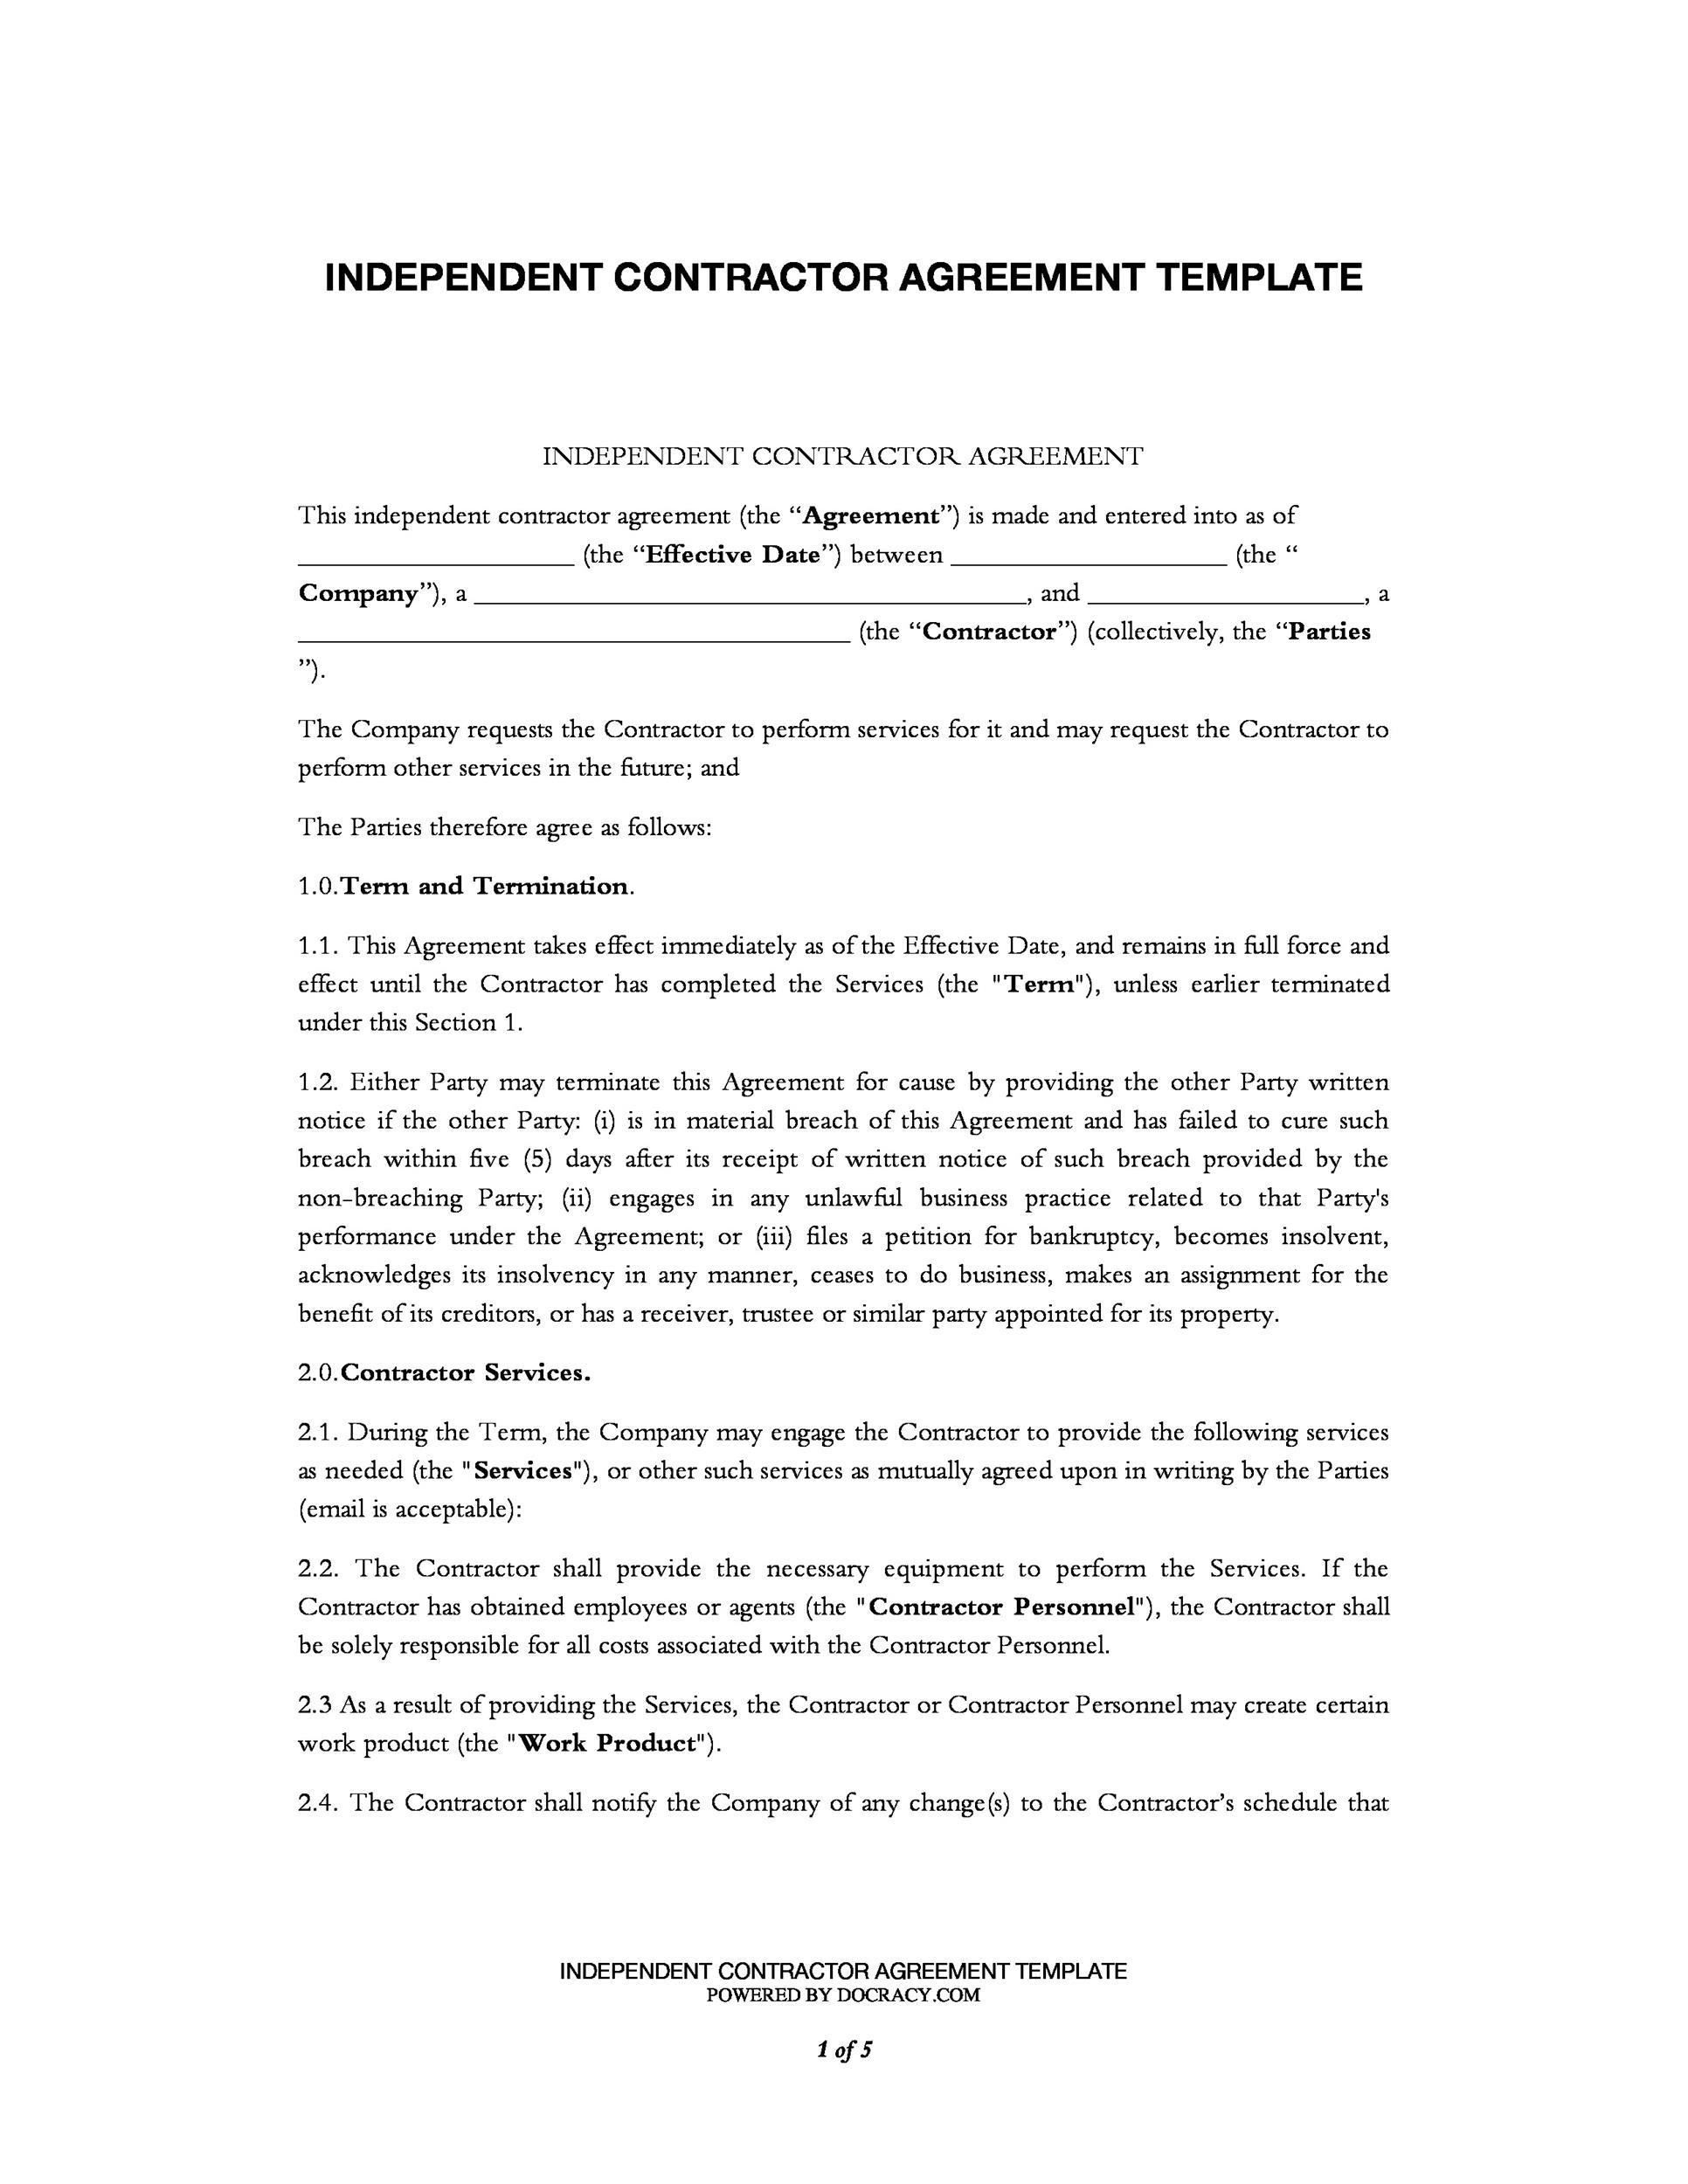 Contract Templates | 40 Great Contract Templates Employment Construction Photography Etc